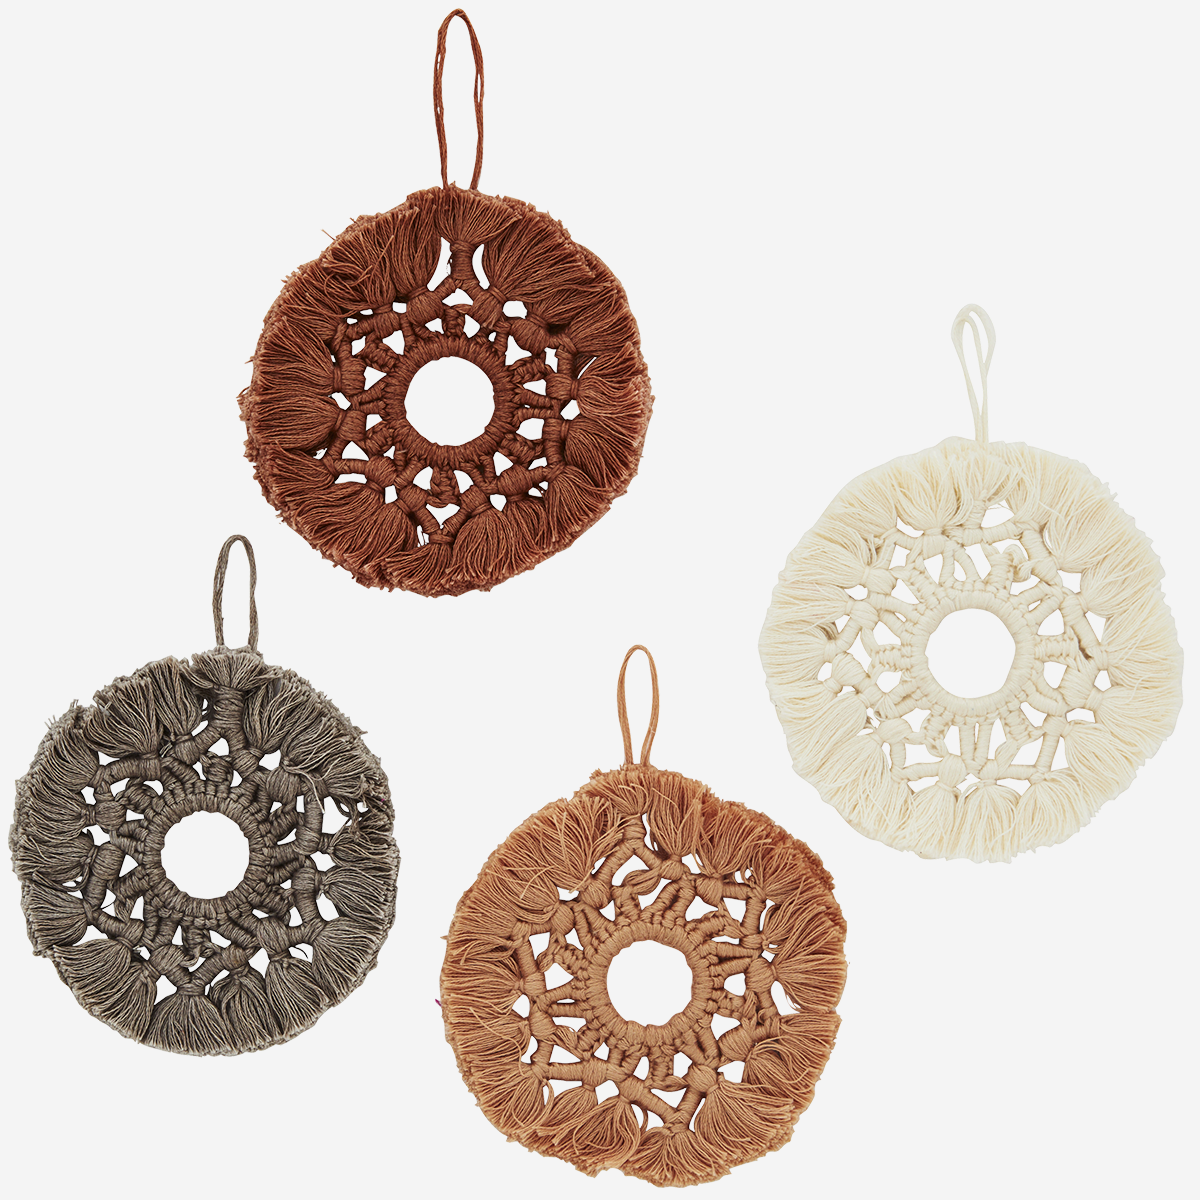 Hanging cotton ornament